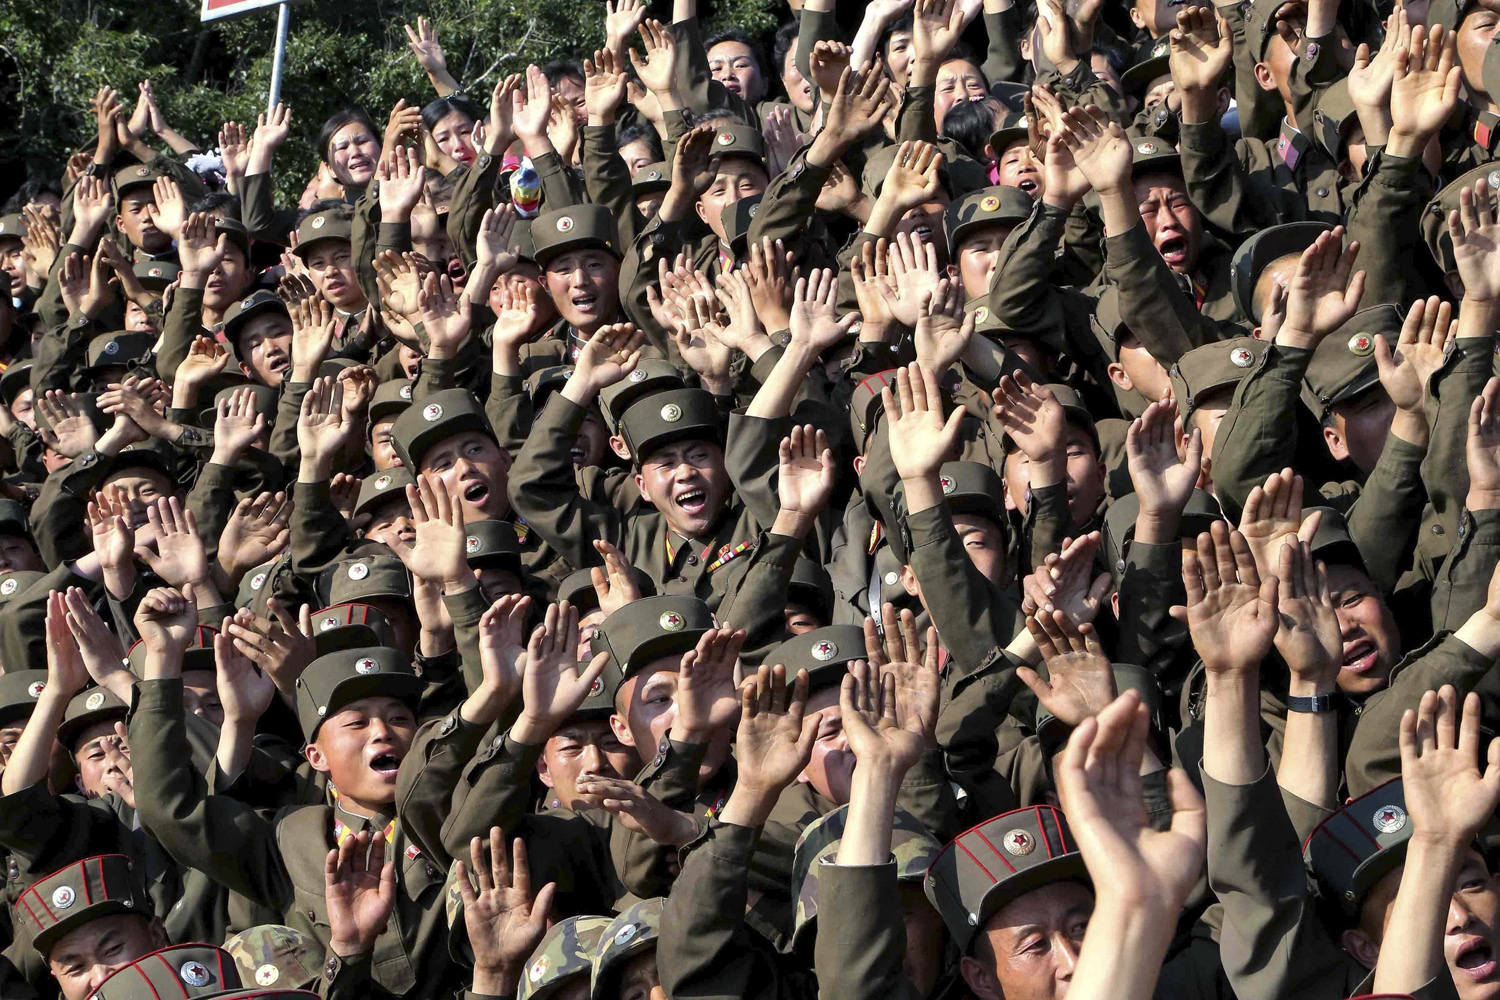 Jul. 7, 2014. Soldiers wave during a visit by North Korean leader Kim Jong Un to inspect the defence detachment on Ung Islet, which is defending an outpost in the East Sea of Korea.